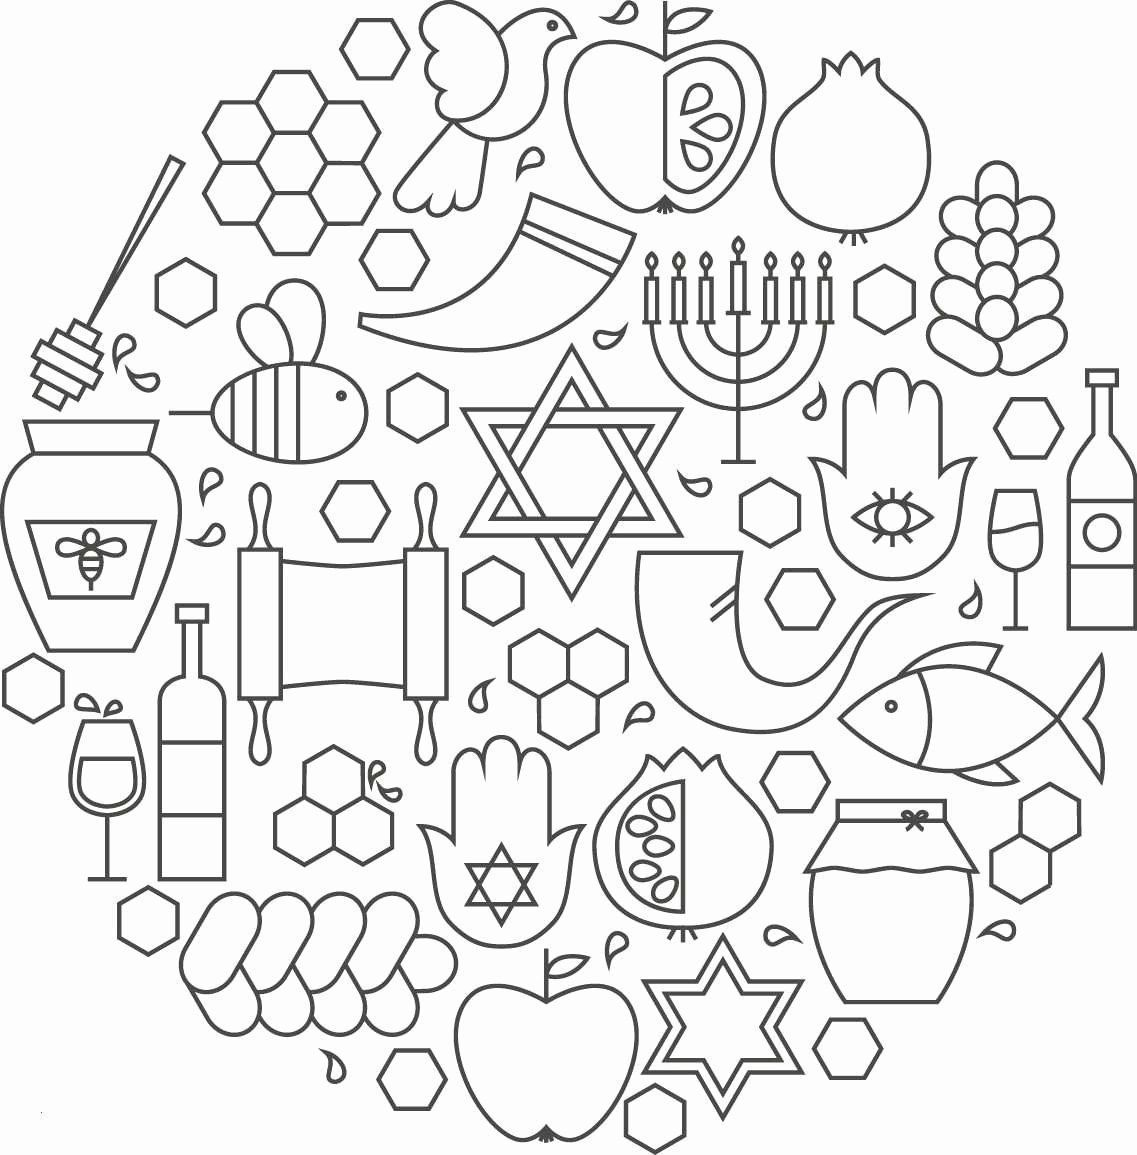 coloring pages rosh hashanah rosh hashanah coloring pages printable for kids family coloring hashanah pages rosh